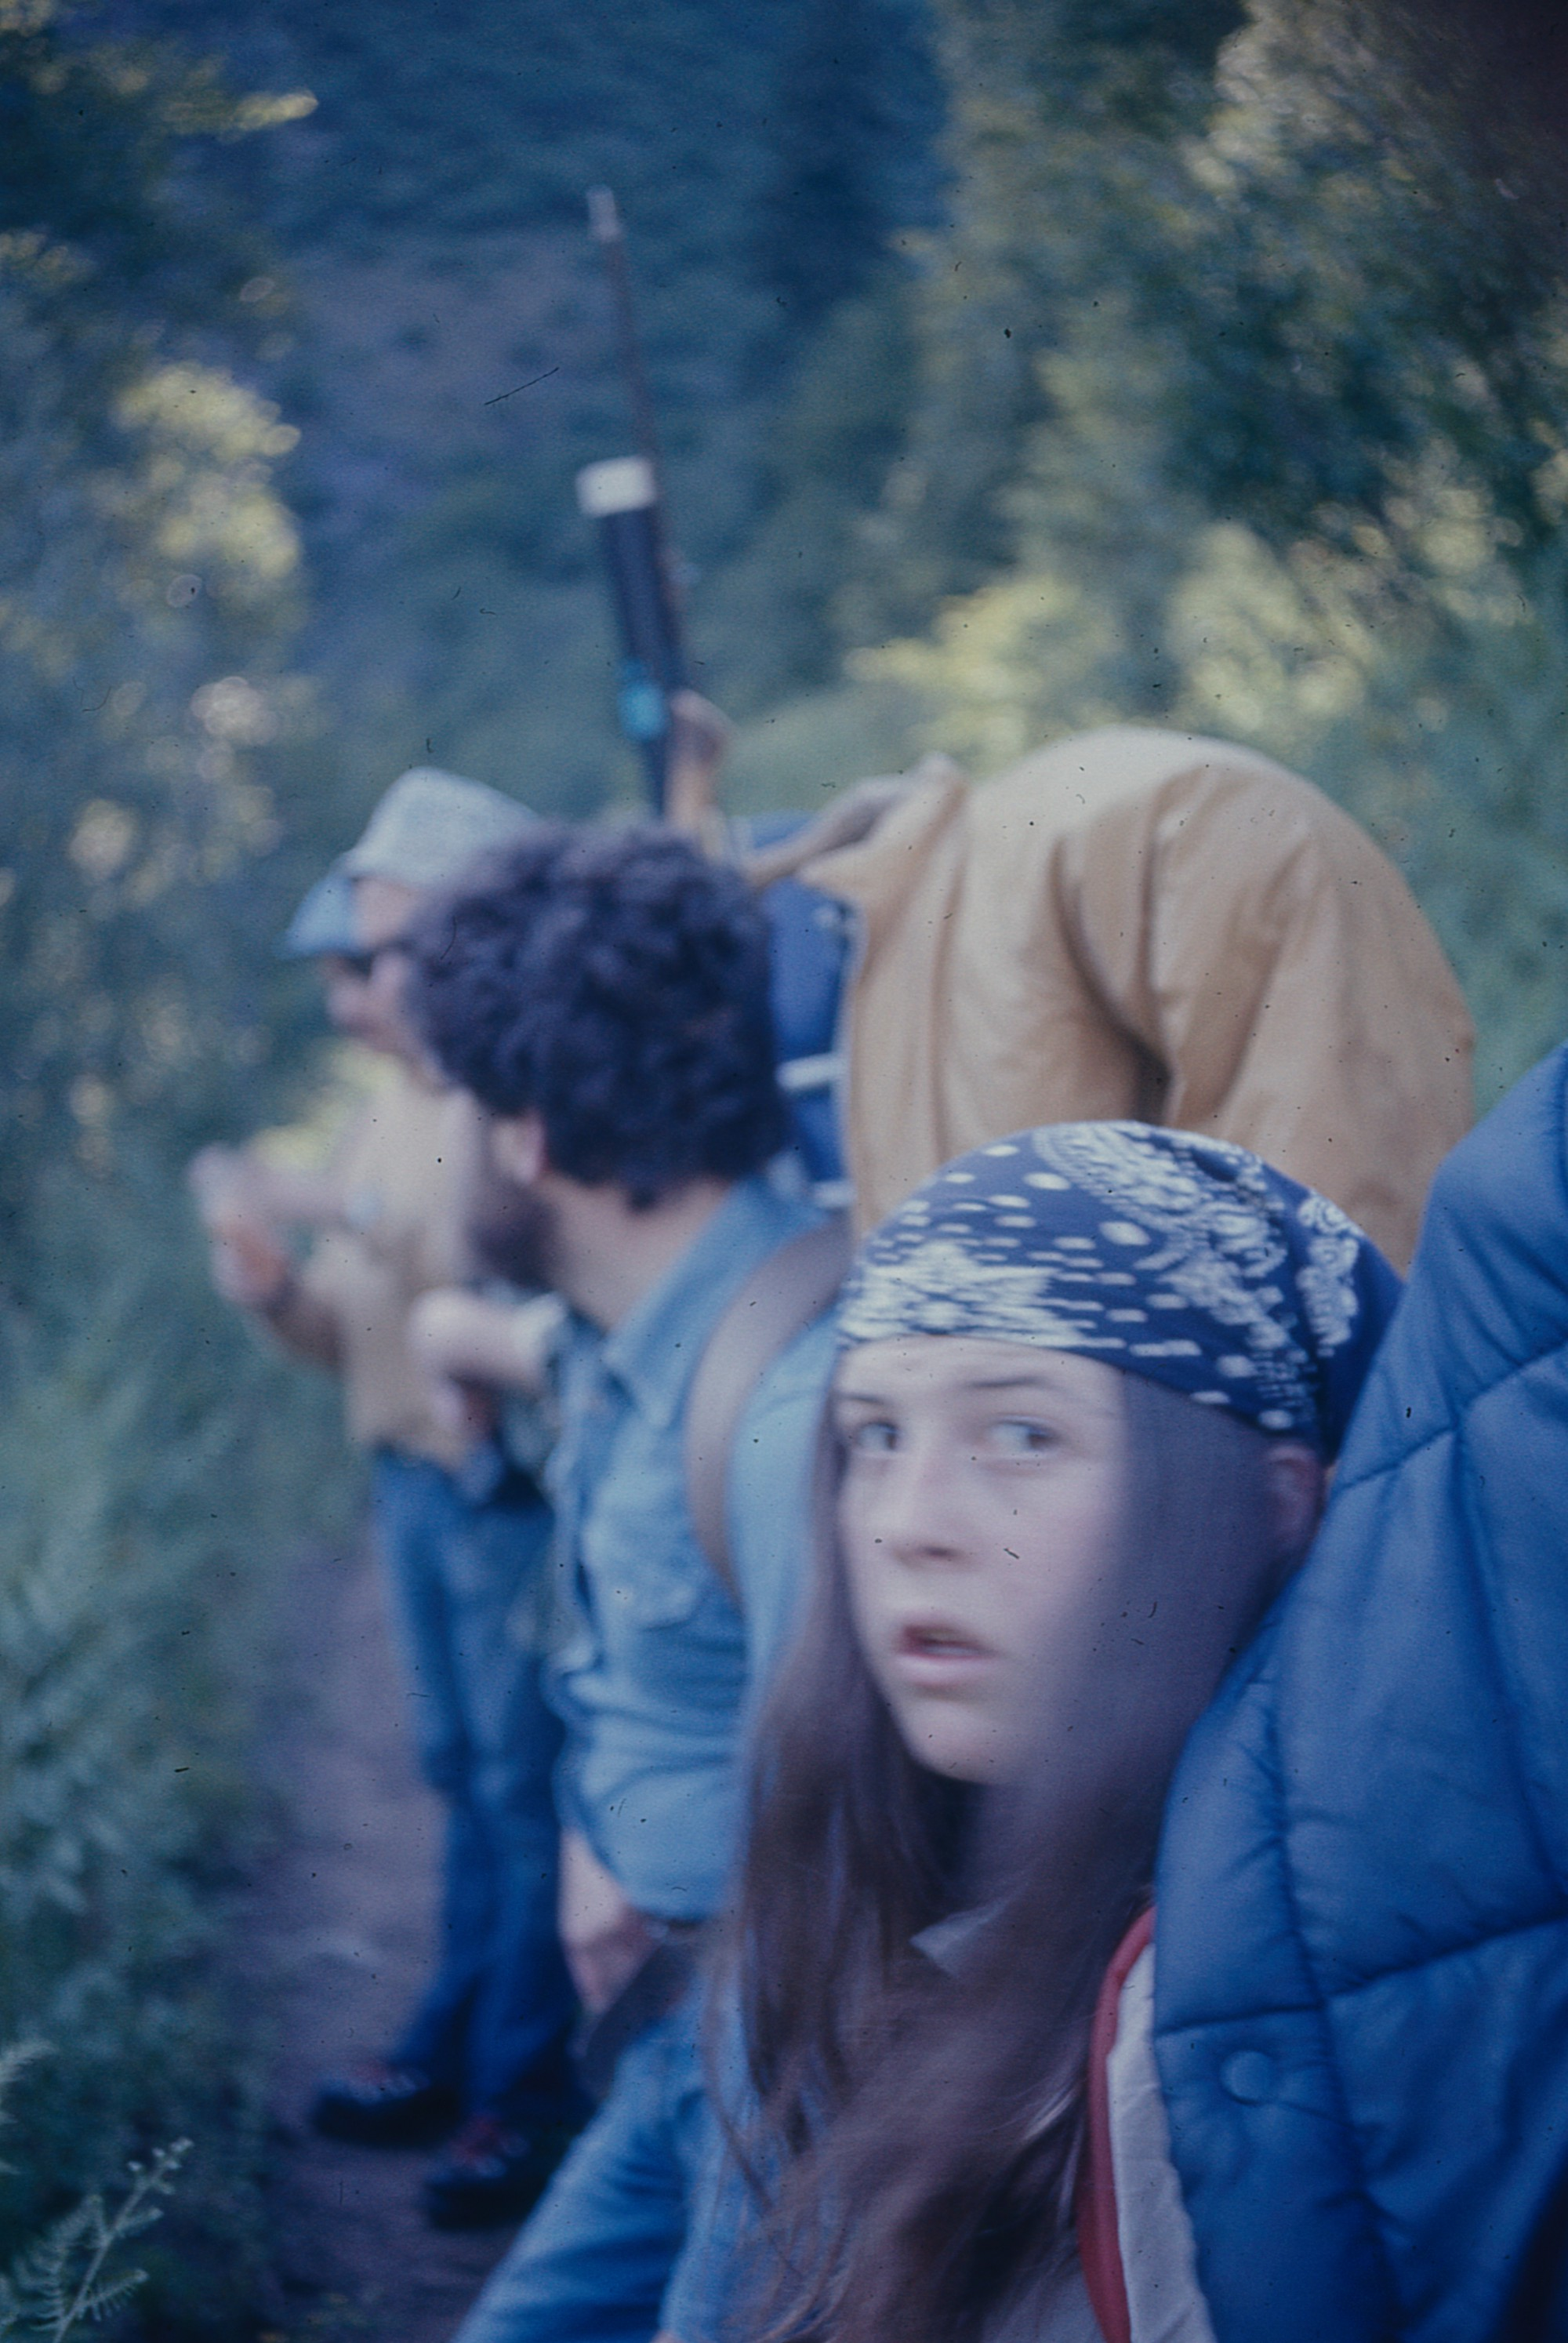 Teenage irl with long brown hair wearing a bandnana scarf and carrying a back pack with a coat over it, looking back at the camera with two other backpakers behind her.